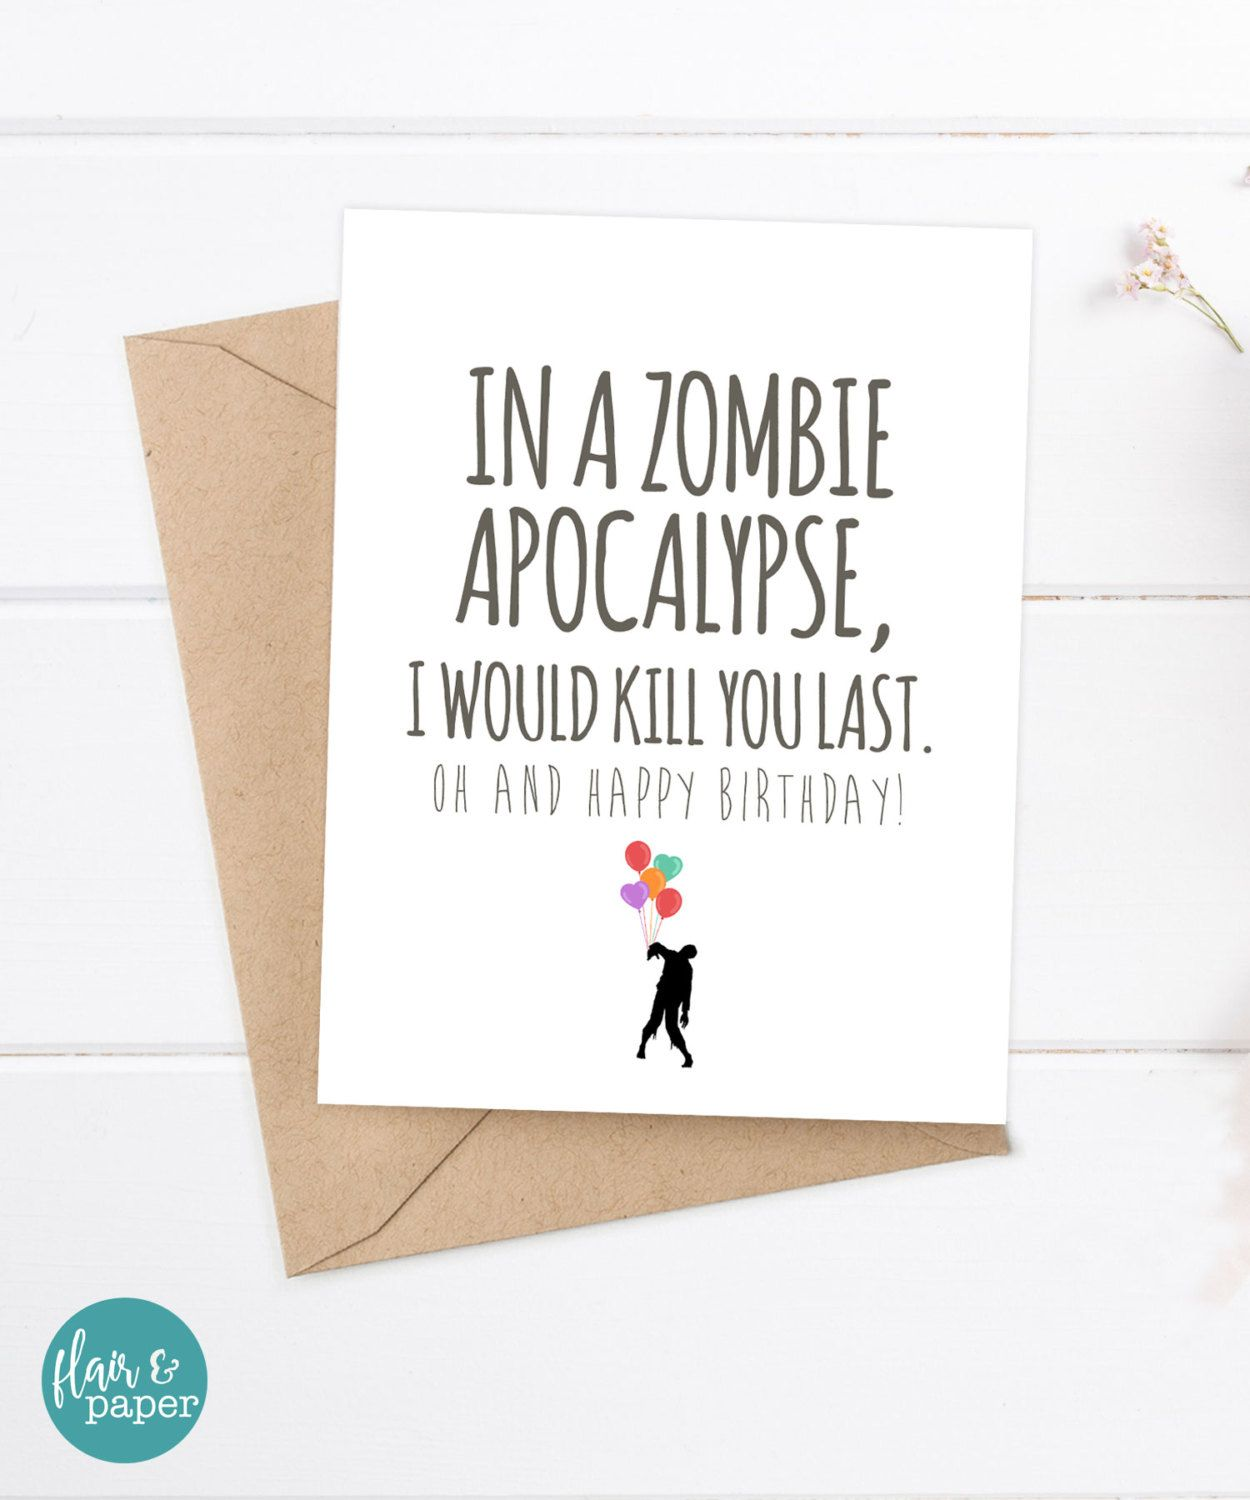 Pin by heyar padron on funny birthday cards pinterest cards and boyfriend card funny birthday card zombie card snarky greeting card zombie apocalypse birthday card by flairandpaper on etsy bookmarktalkfo Choice Image